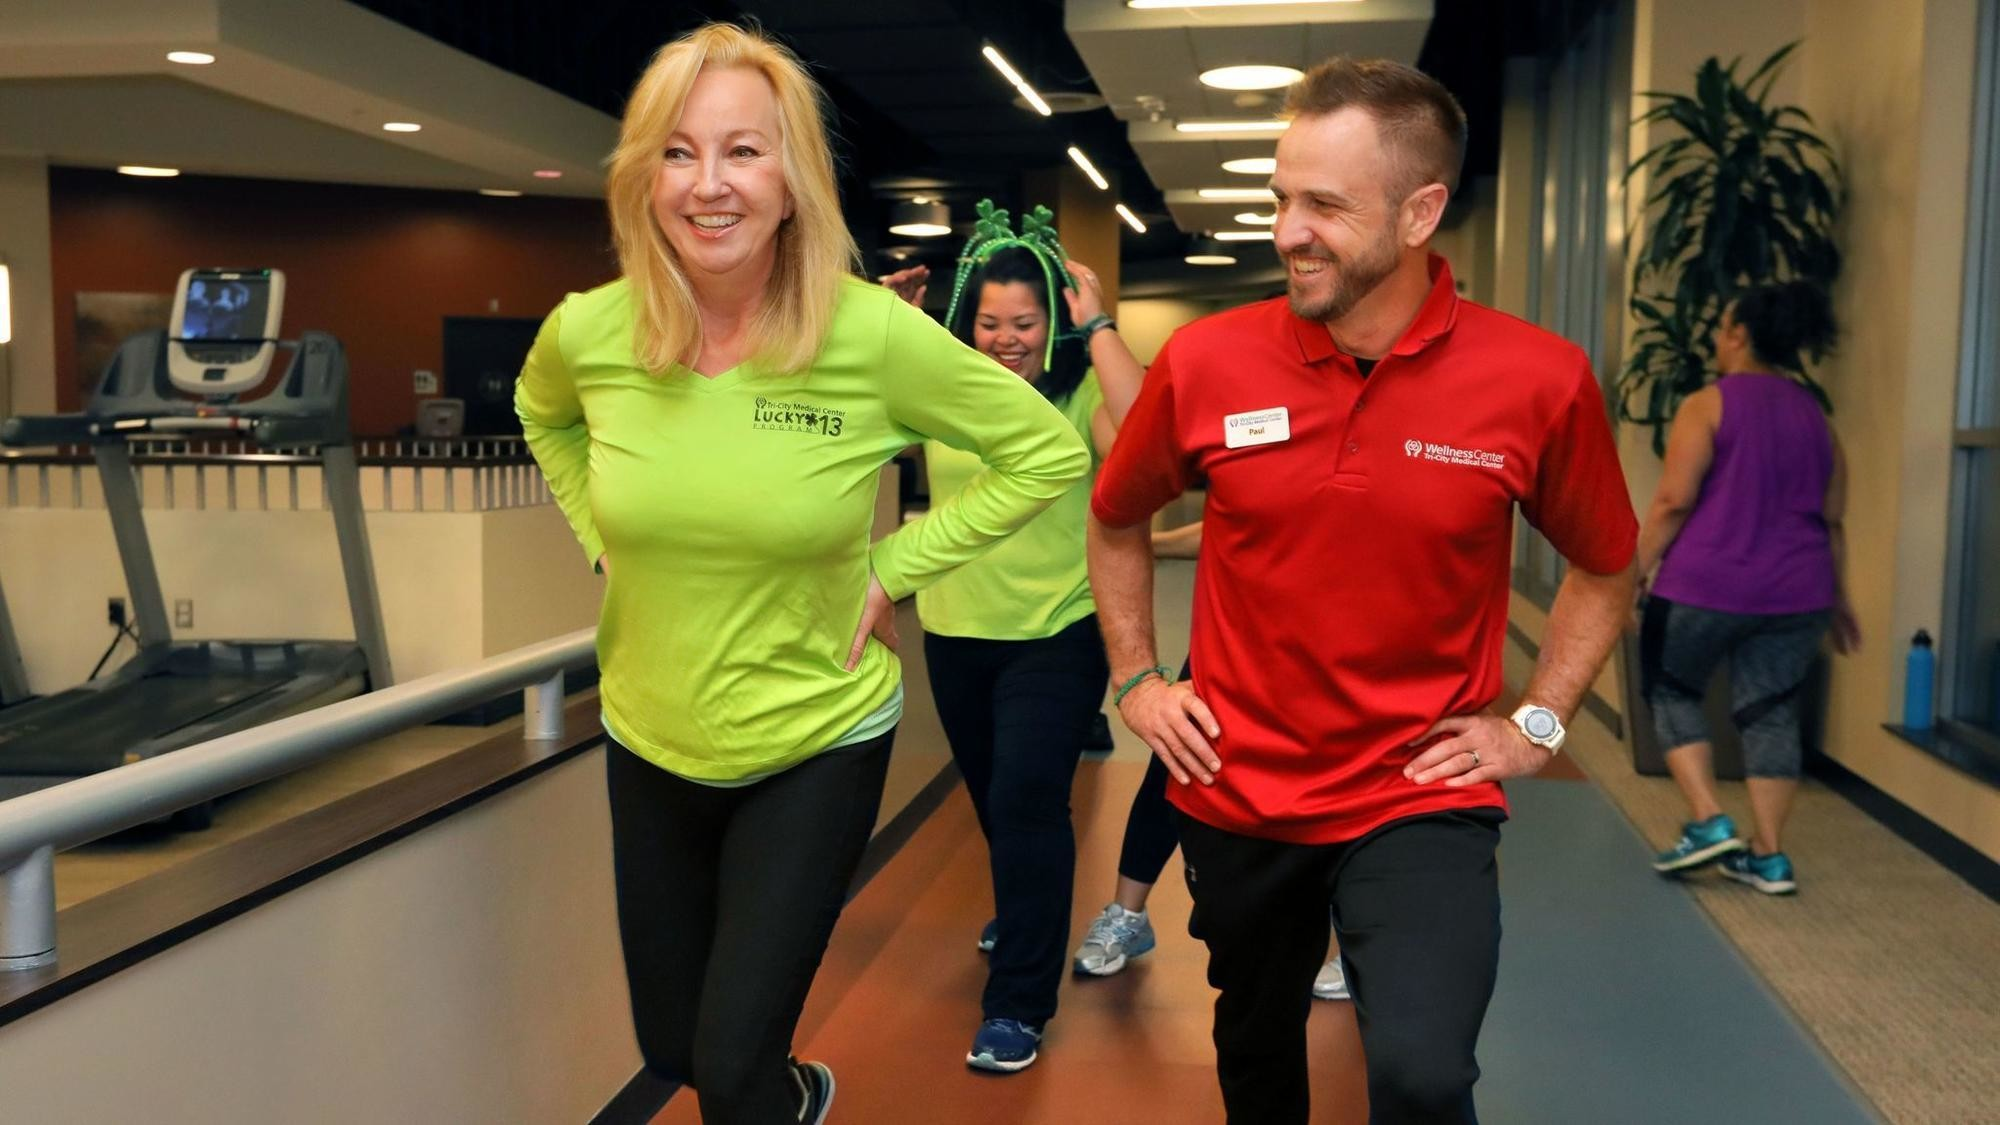 Beth Thorp suffered a brain seizure that paralyzed her right side but on Sunday she plans to finish the Tri-City Medical Center Carlsbad Half-Marathon